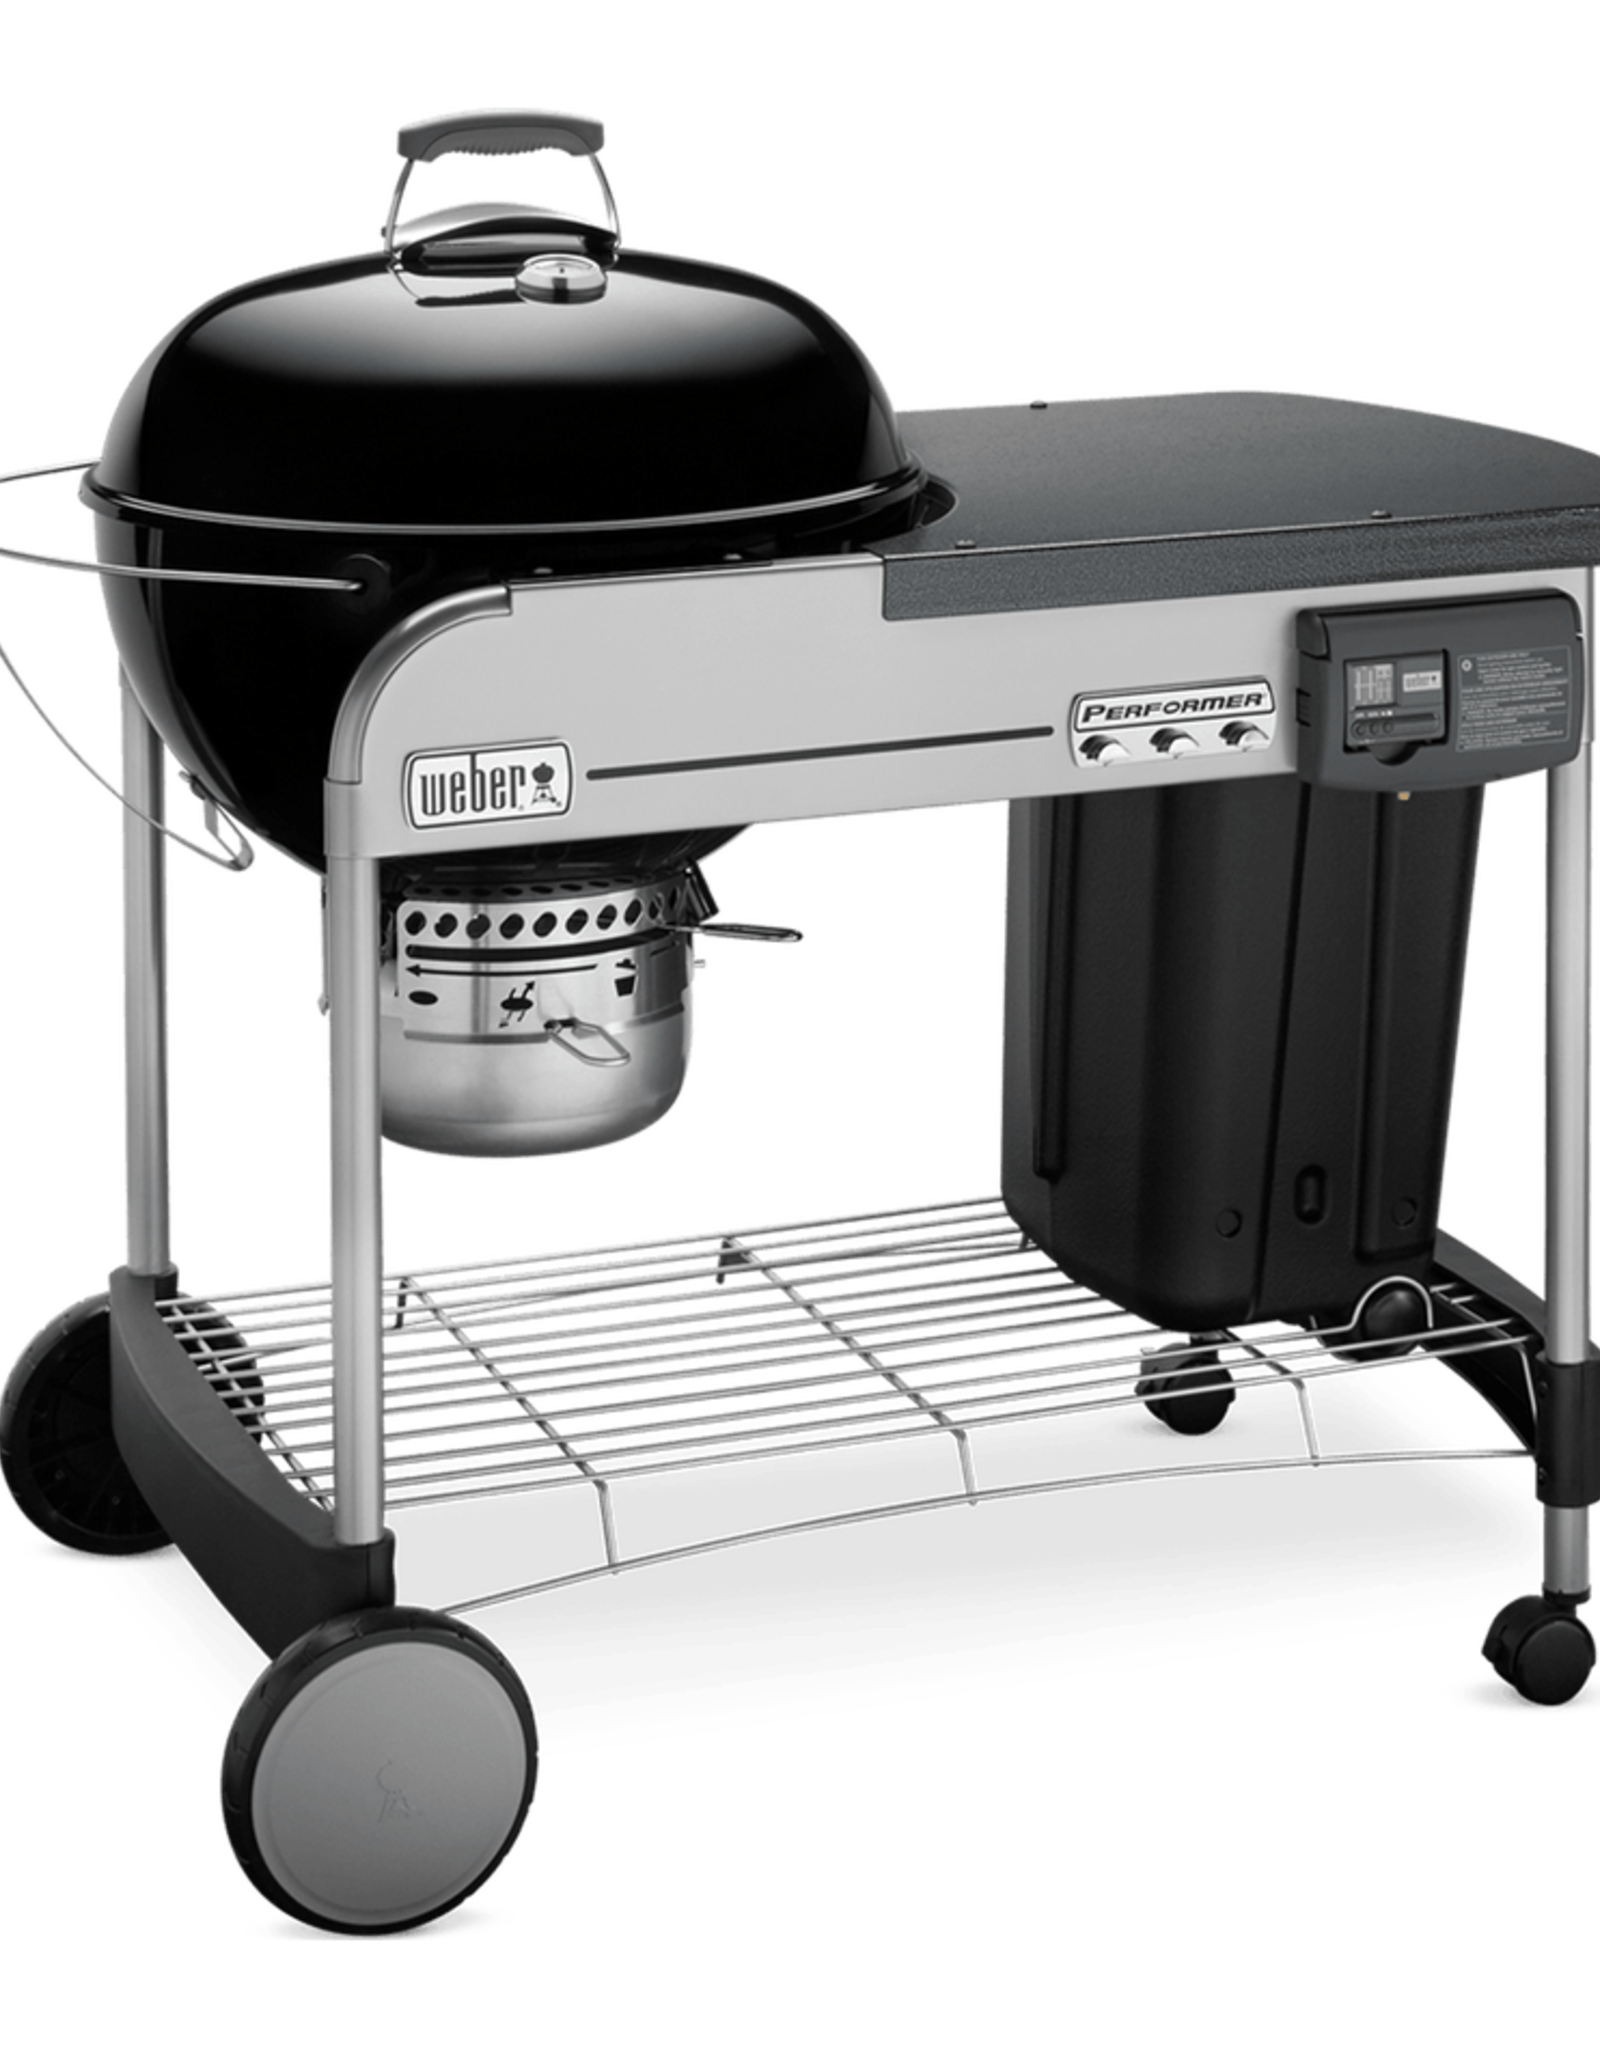 "Weber Weber Performer Deluxe 22"" Charcoal Grill, Black 15501001"